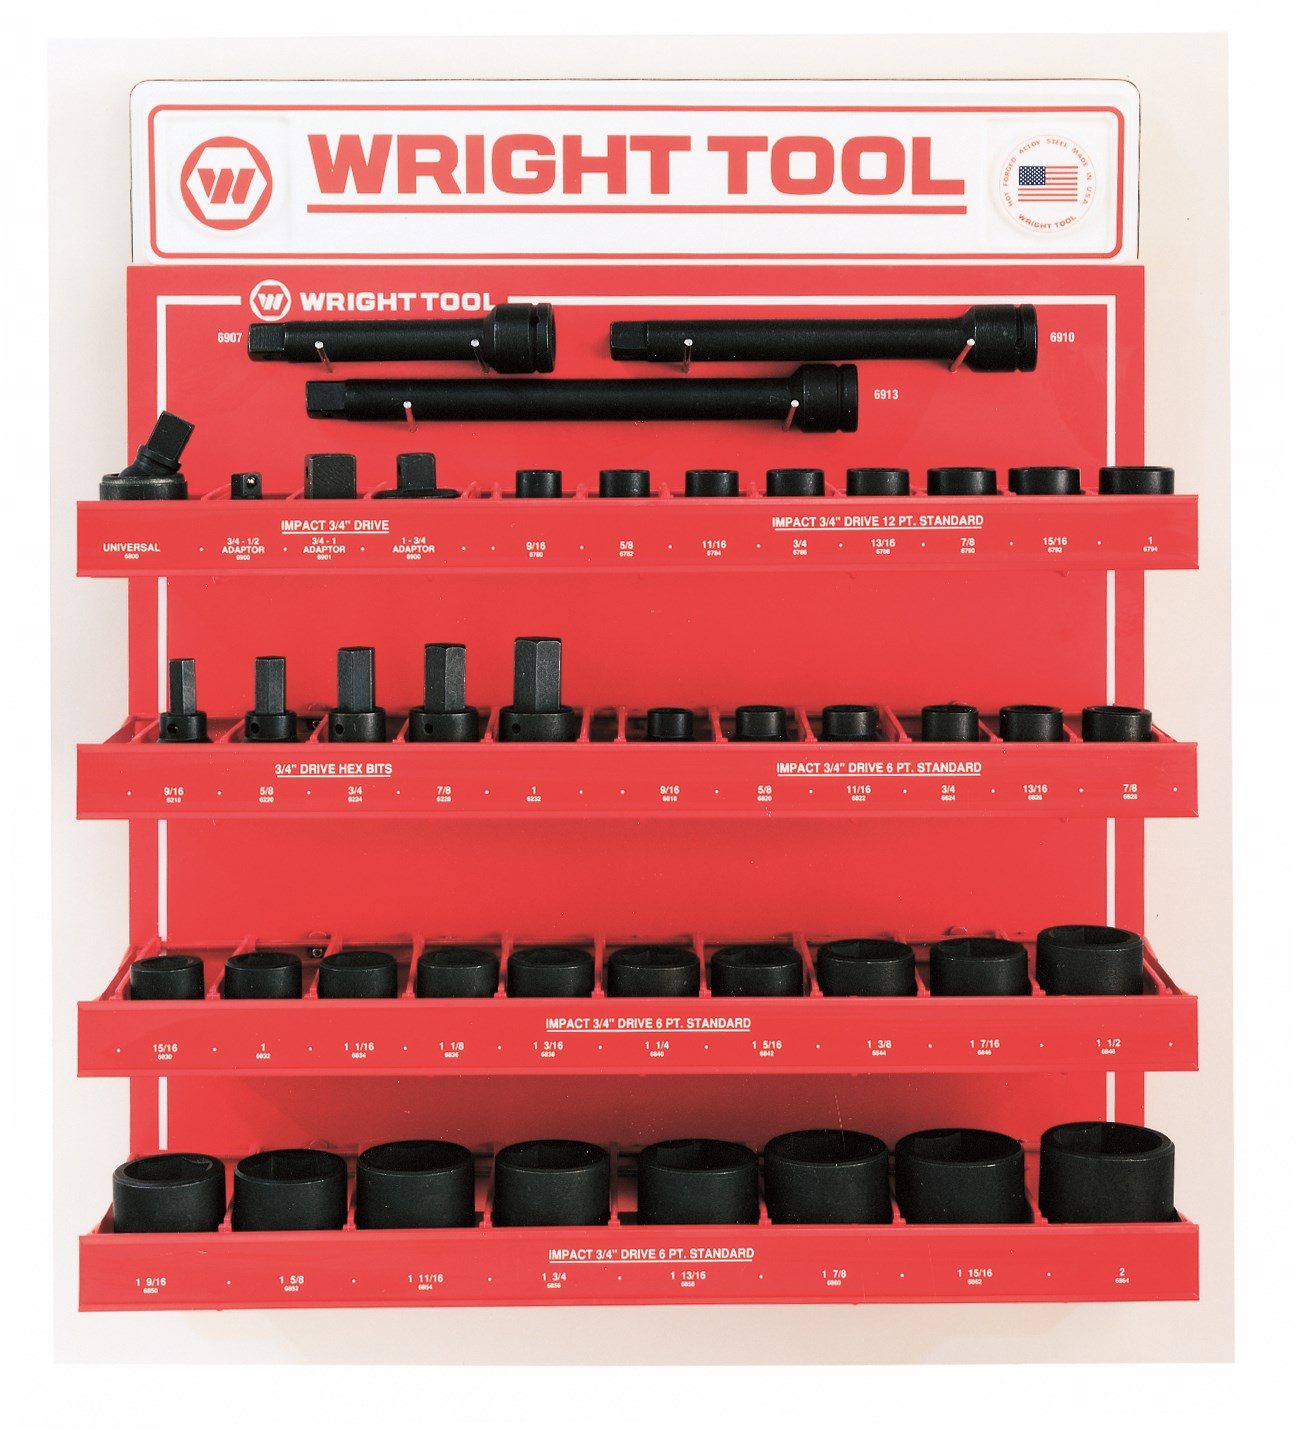 Wright Tool D985 44 Piece 3/4-inch Drive 6 & 12-Point Standard Impact Sockets & Attachments